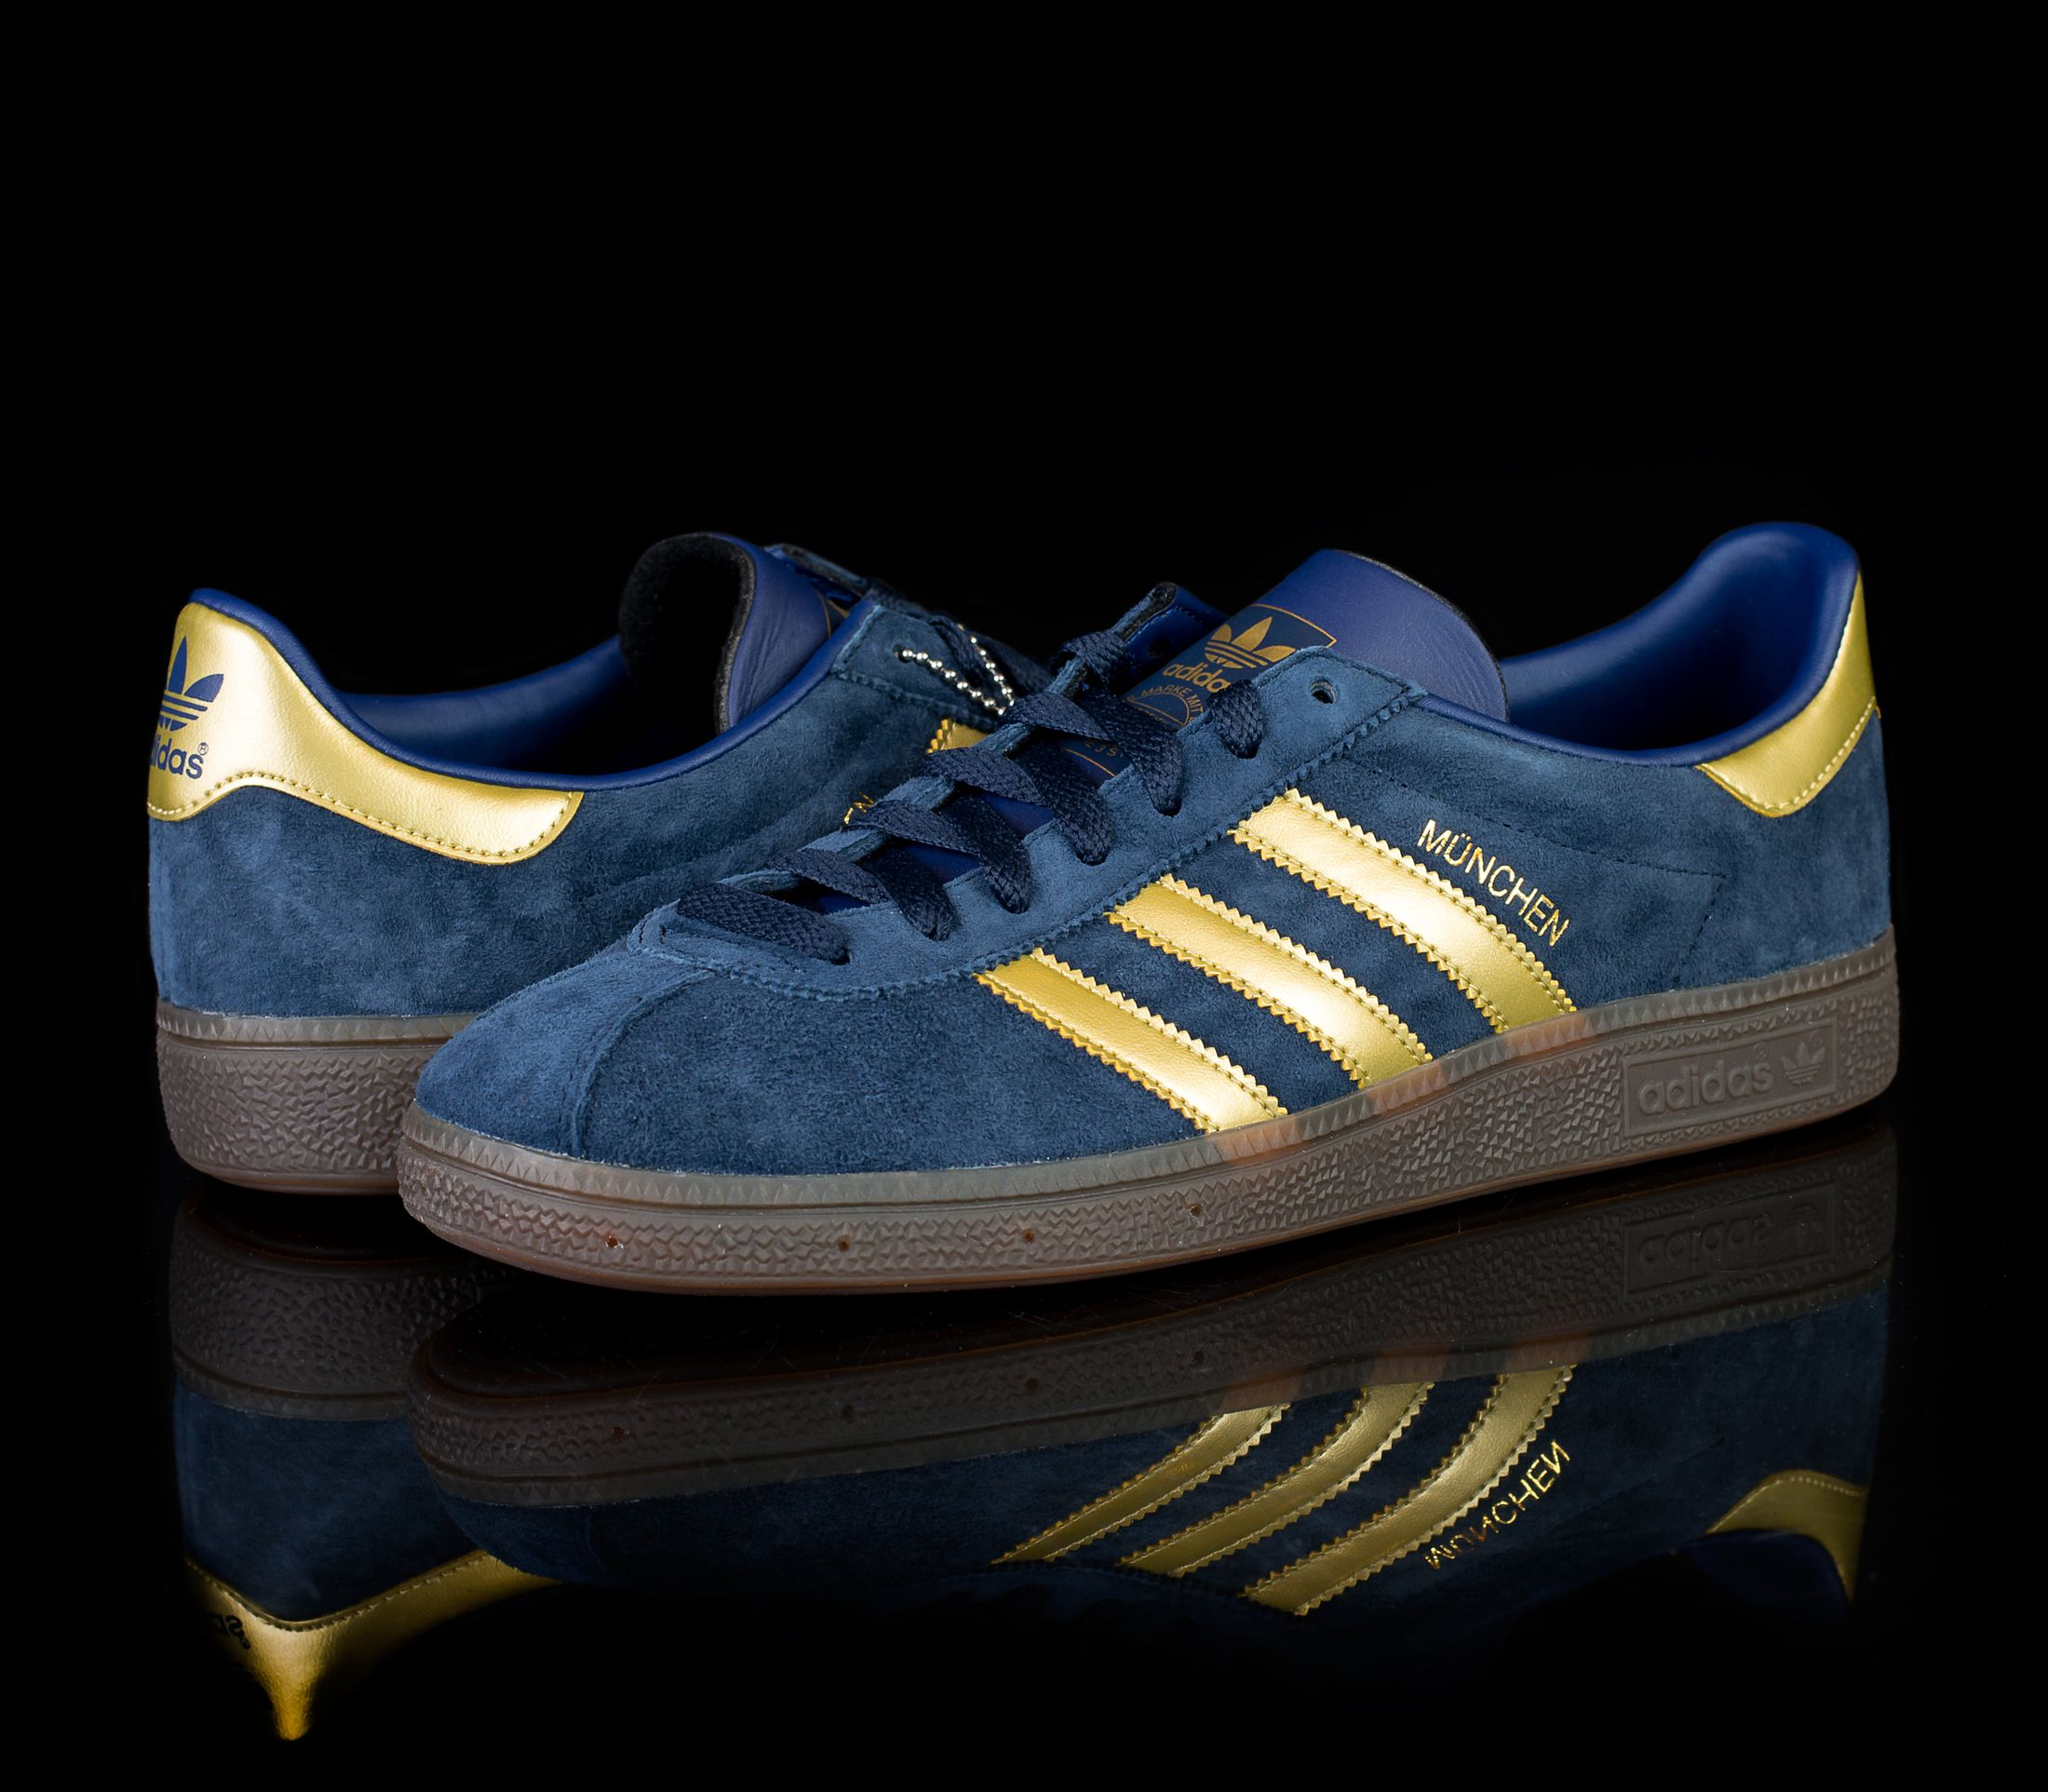 ffe7041c8ae557 adidas spezial yellow and blue